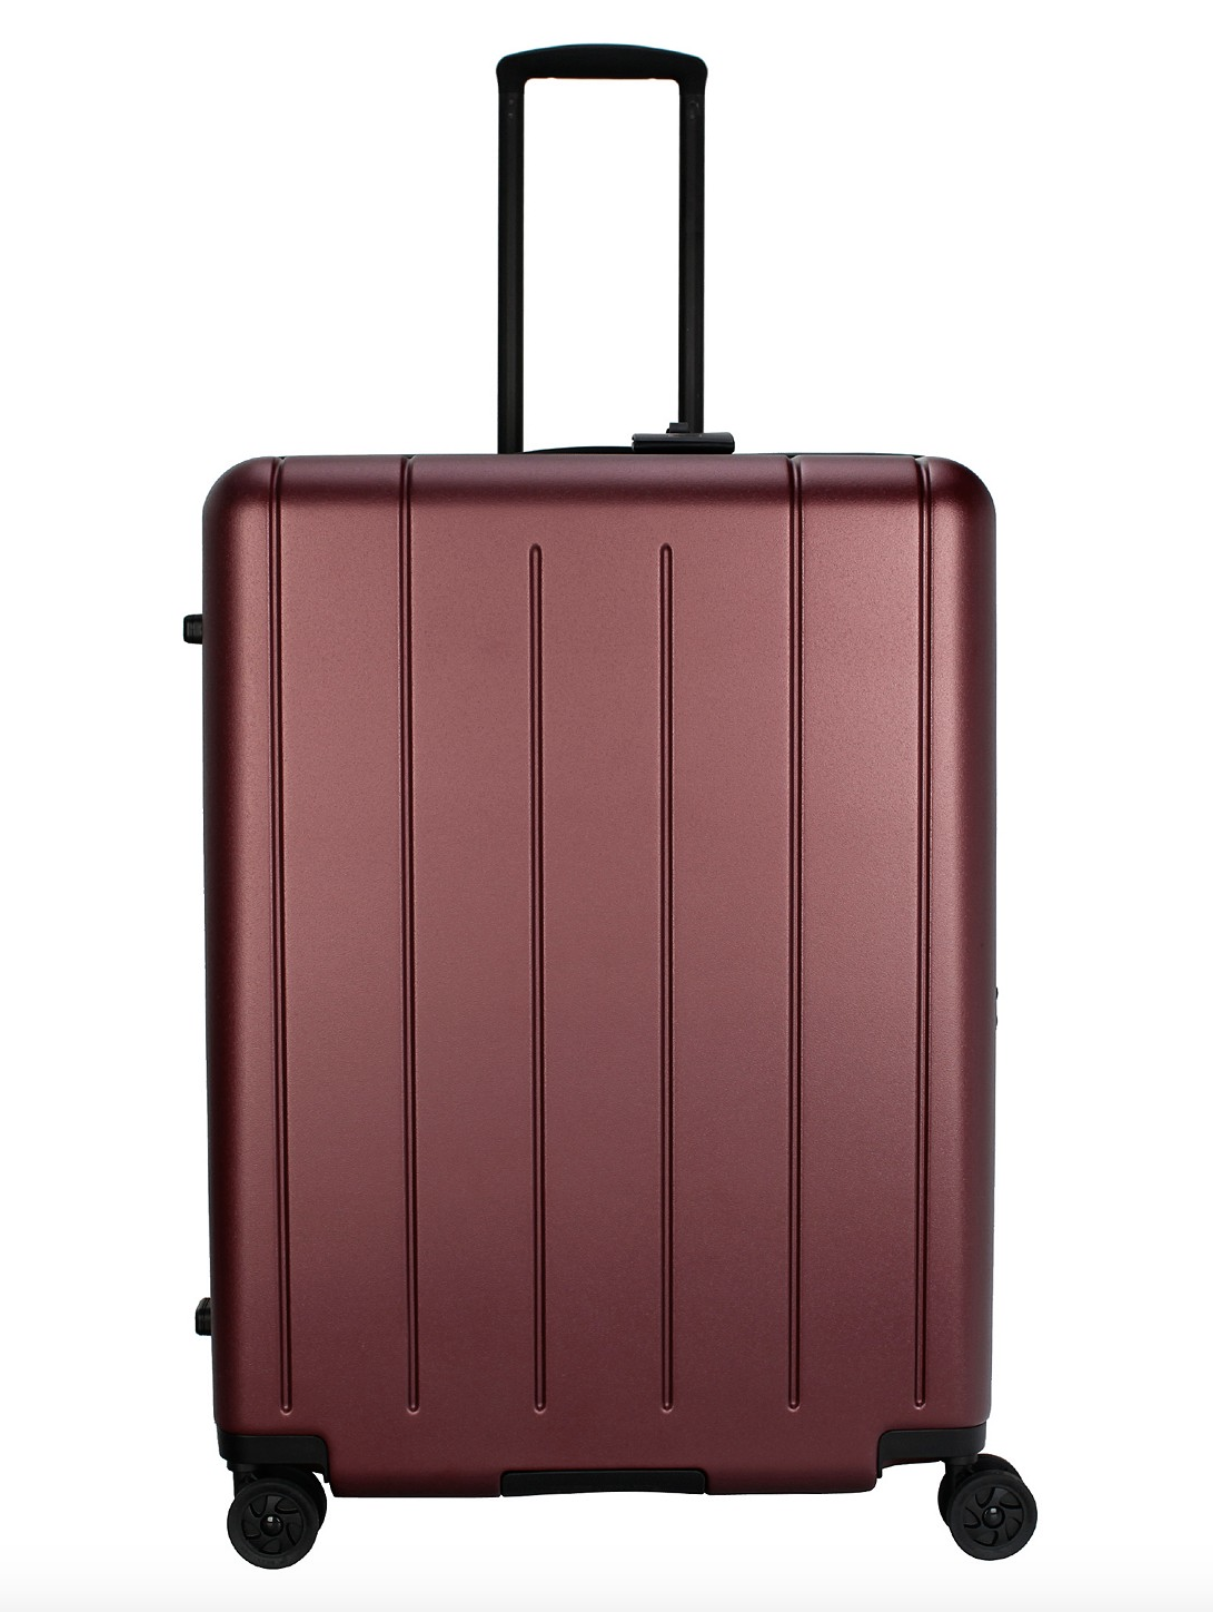 Trips 2.0 29-inch hardside check-in luggage